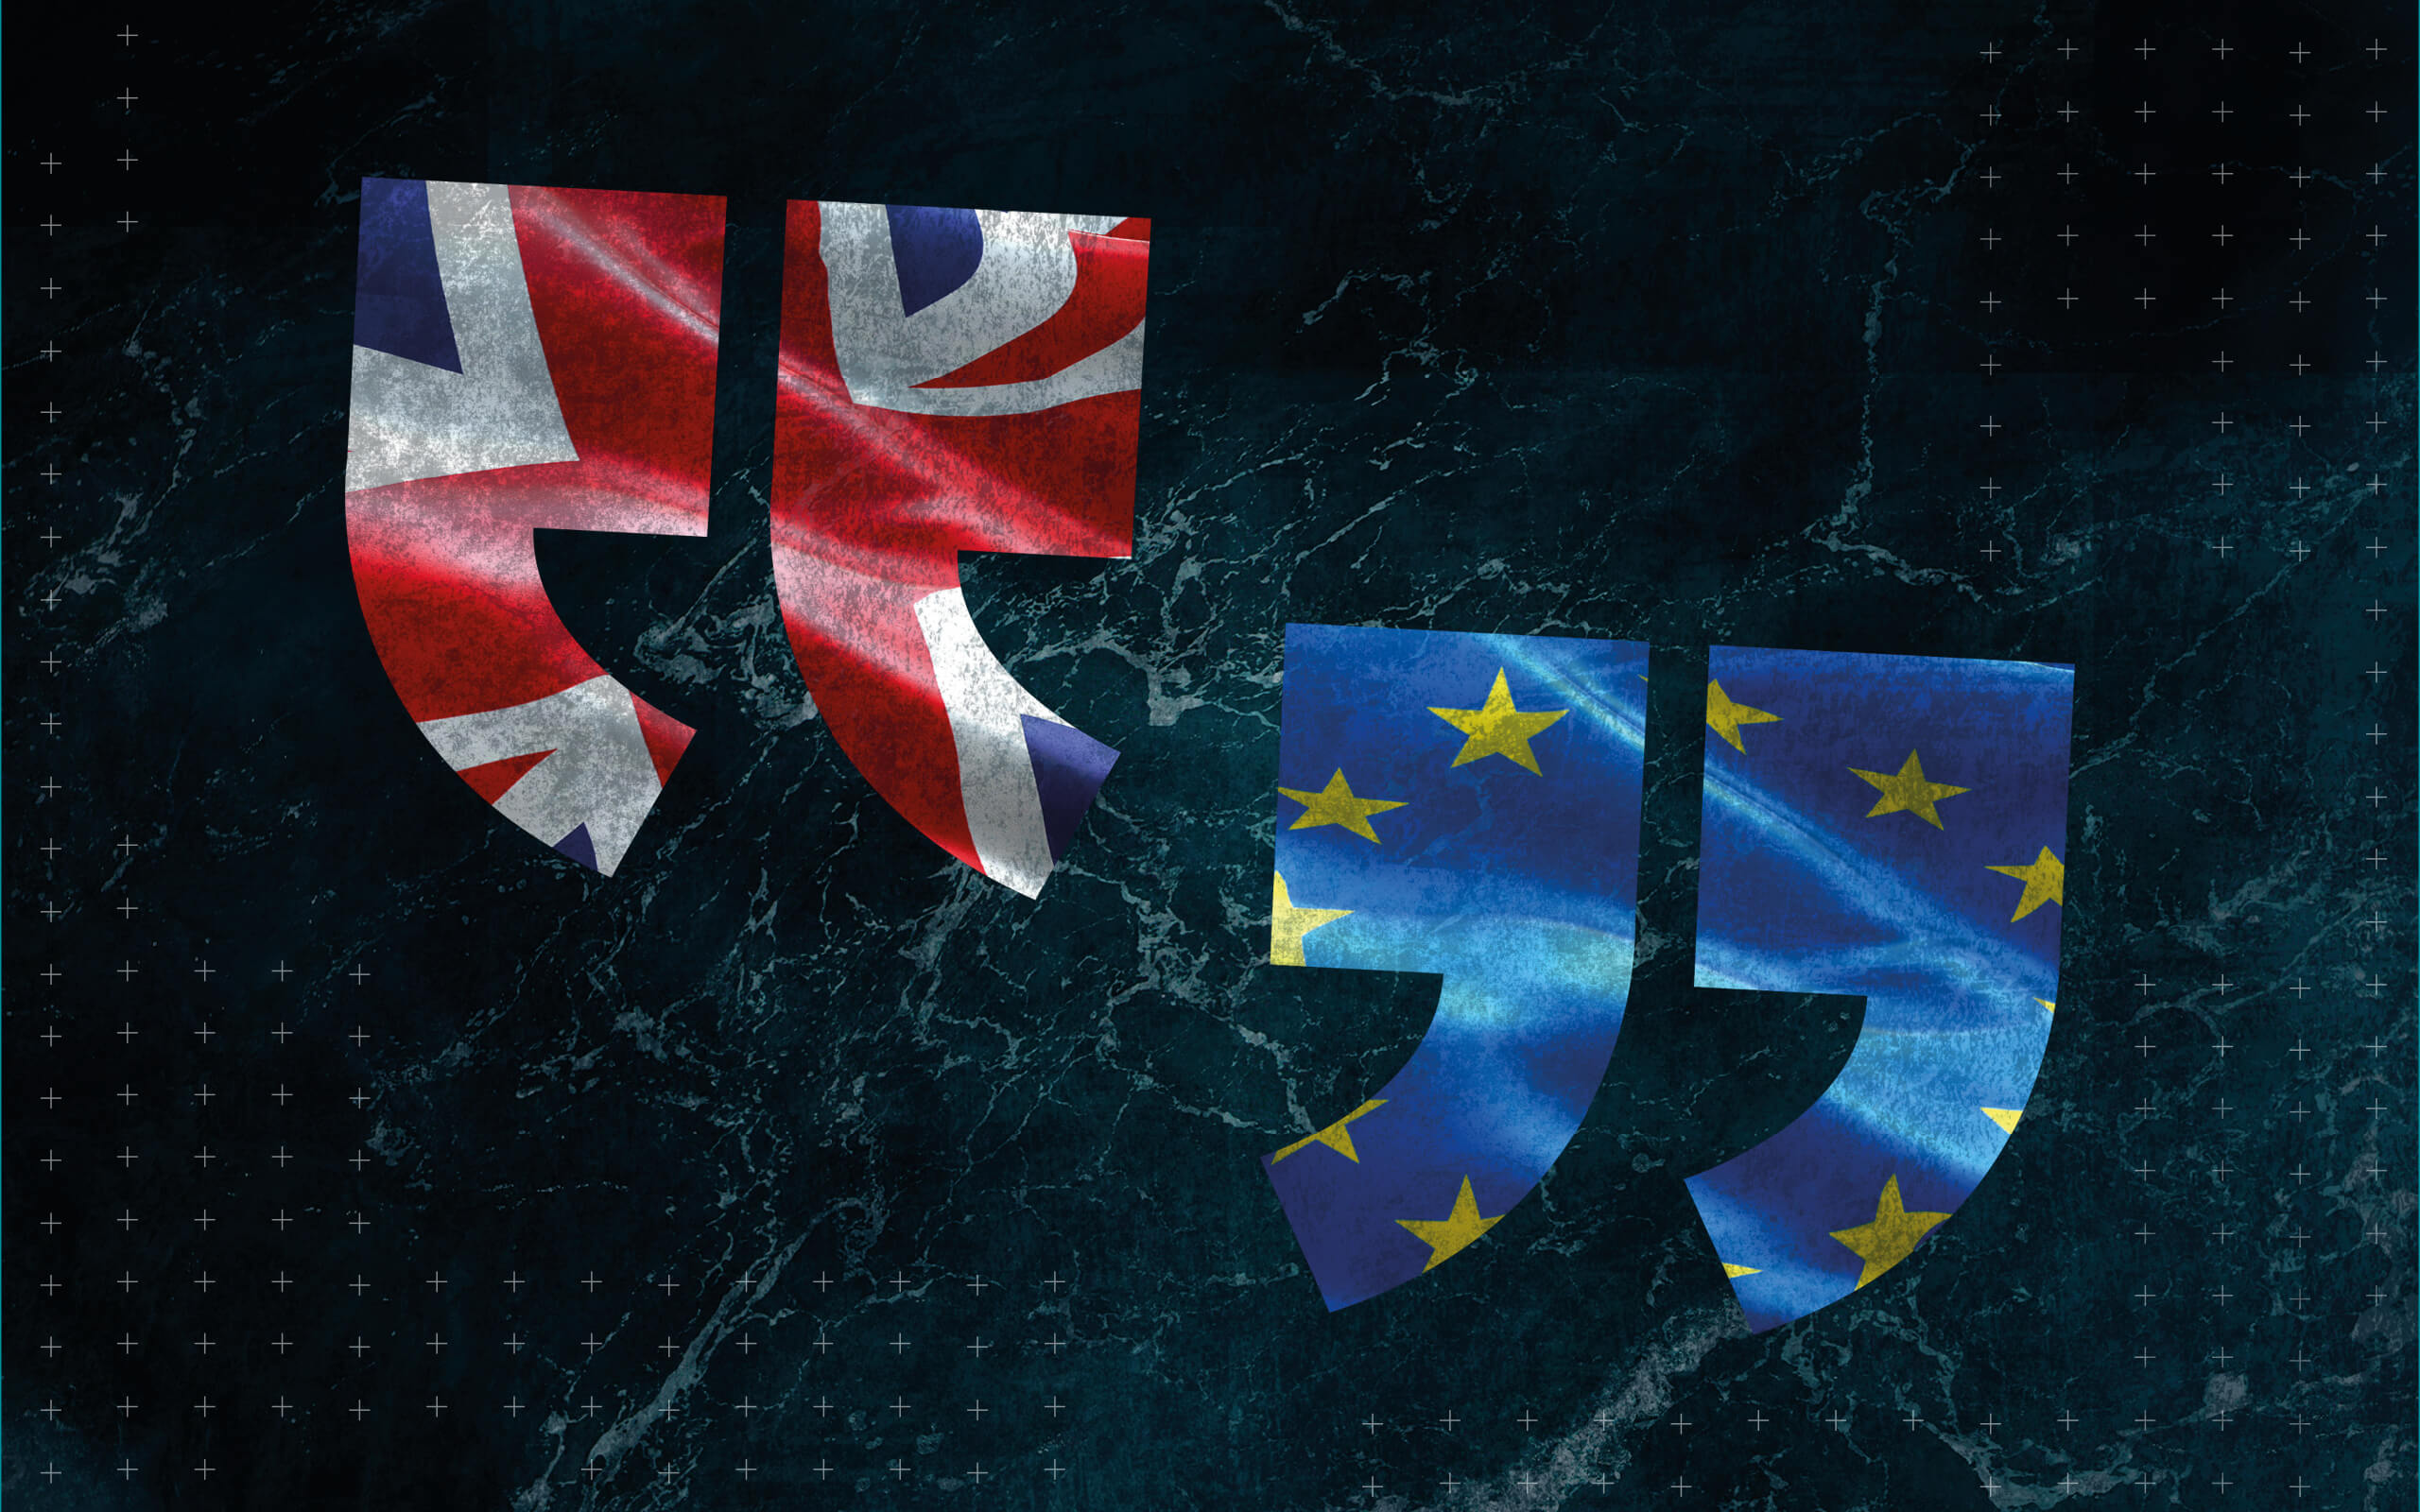 Quotation marks with one pair in the blue and gold stars flag of the European Union and the other in the red, white and blue of the Union Jack